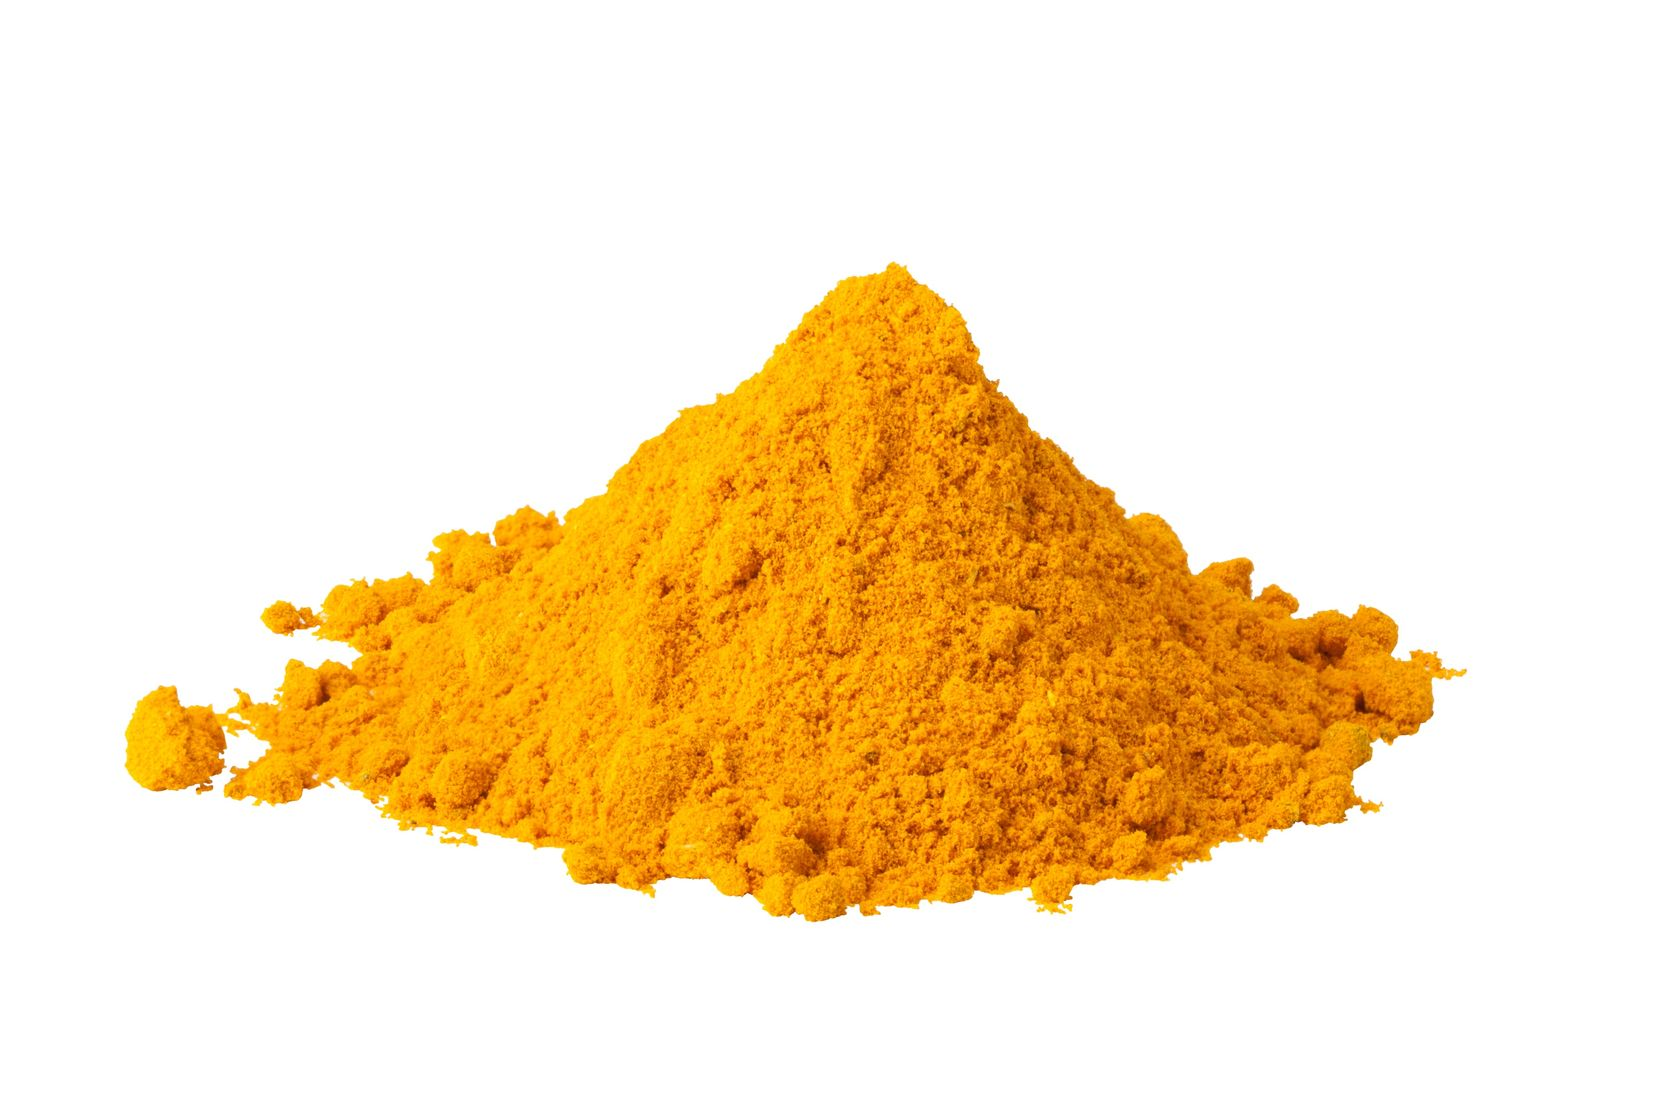 curcumin improves metabolic syndrome